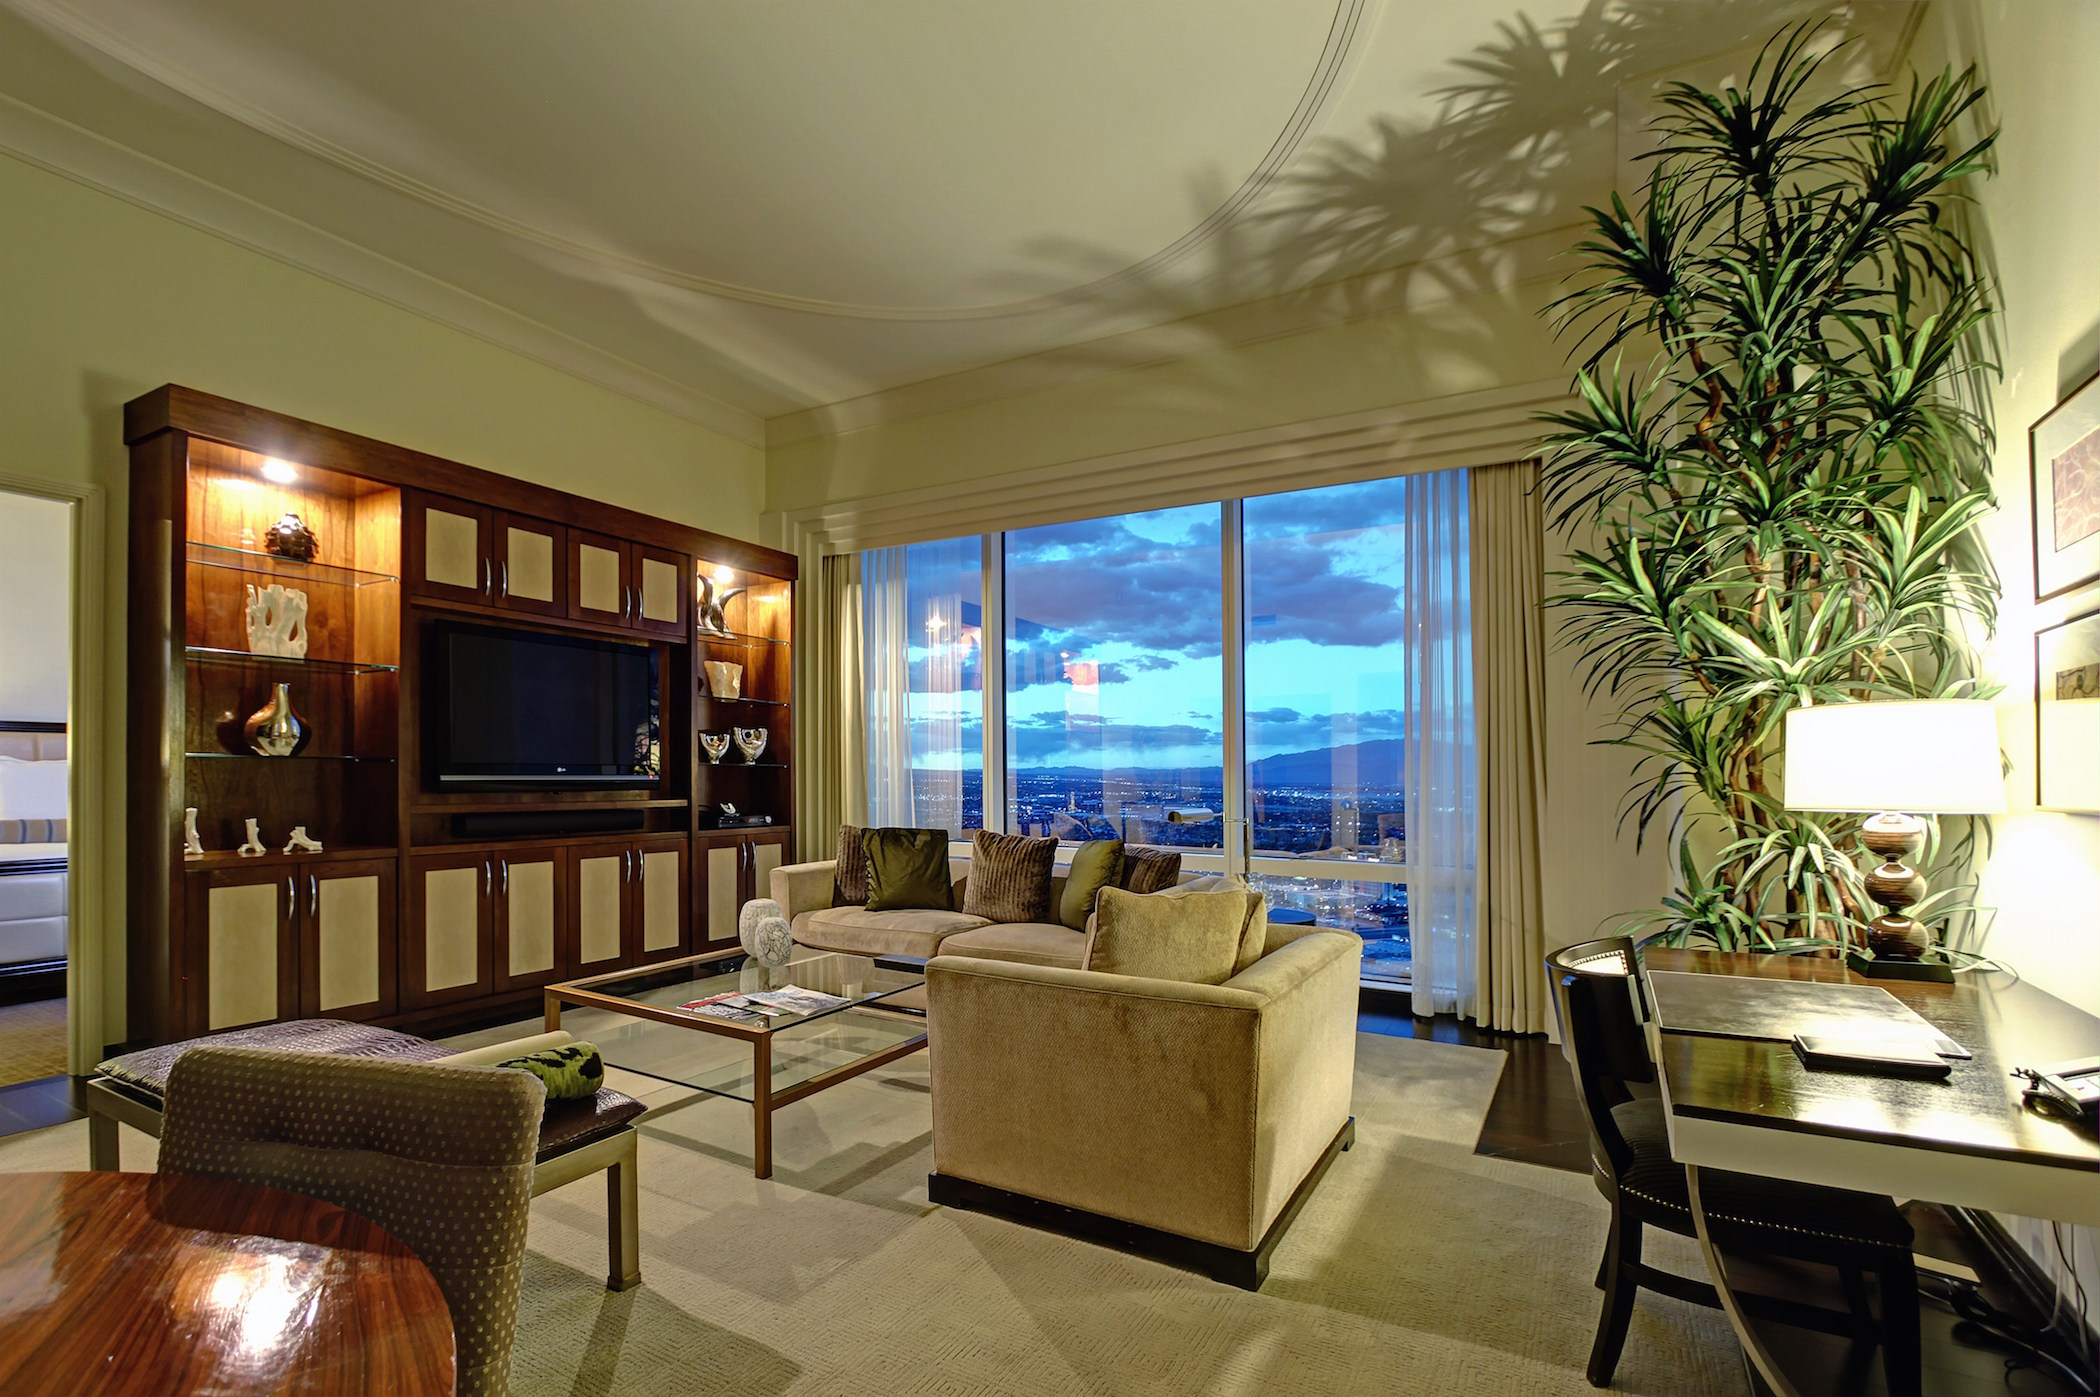 Trump_Las_Vegas-2-Bedroom-Penthouse-for-sale